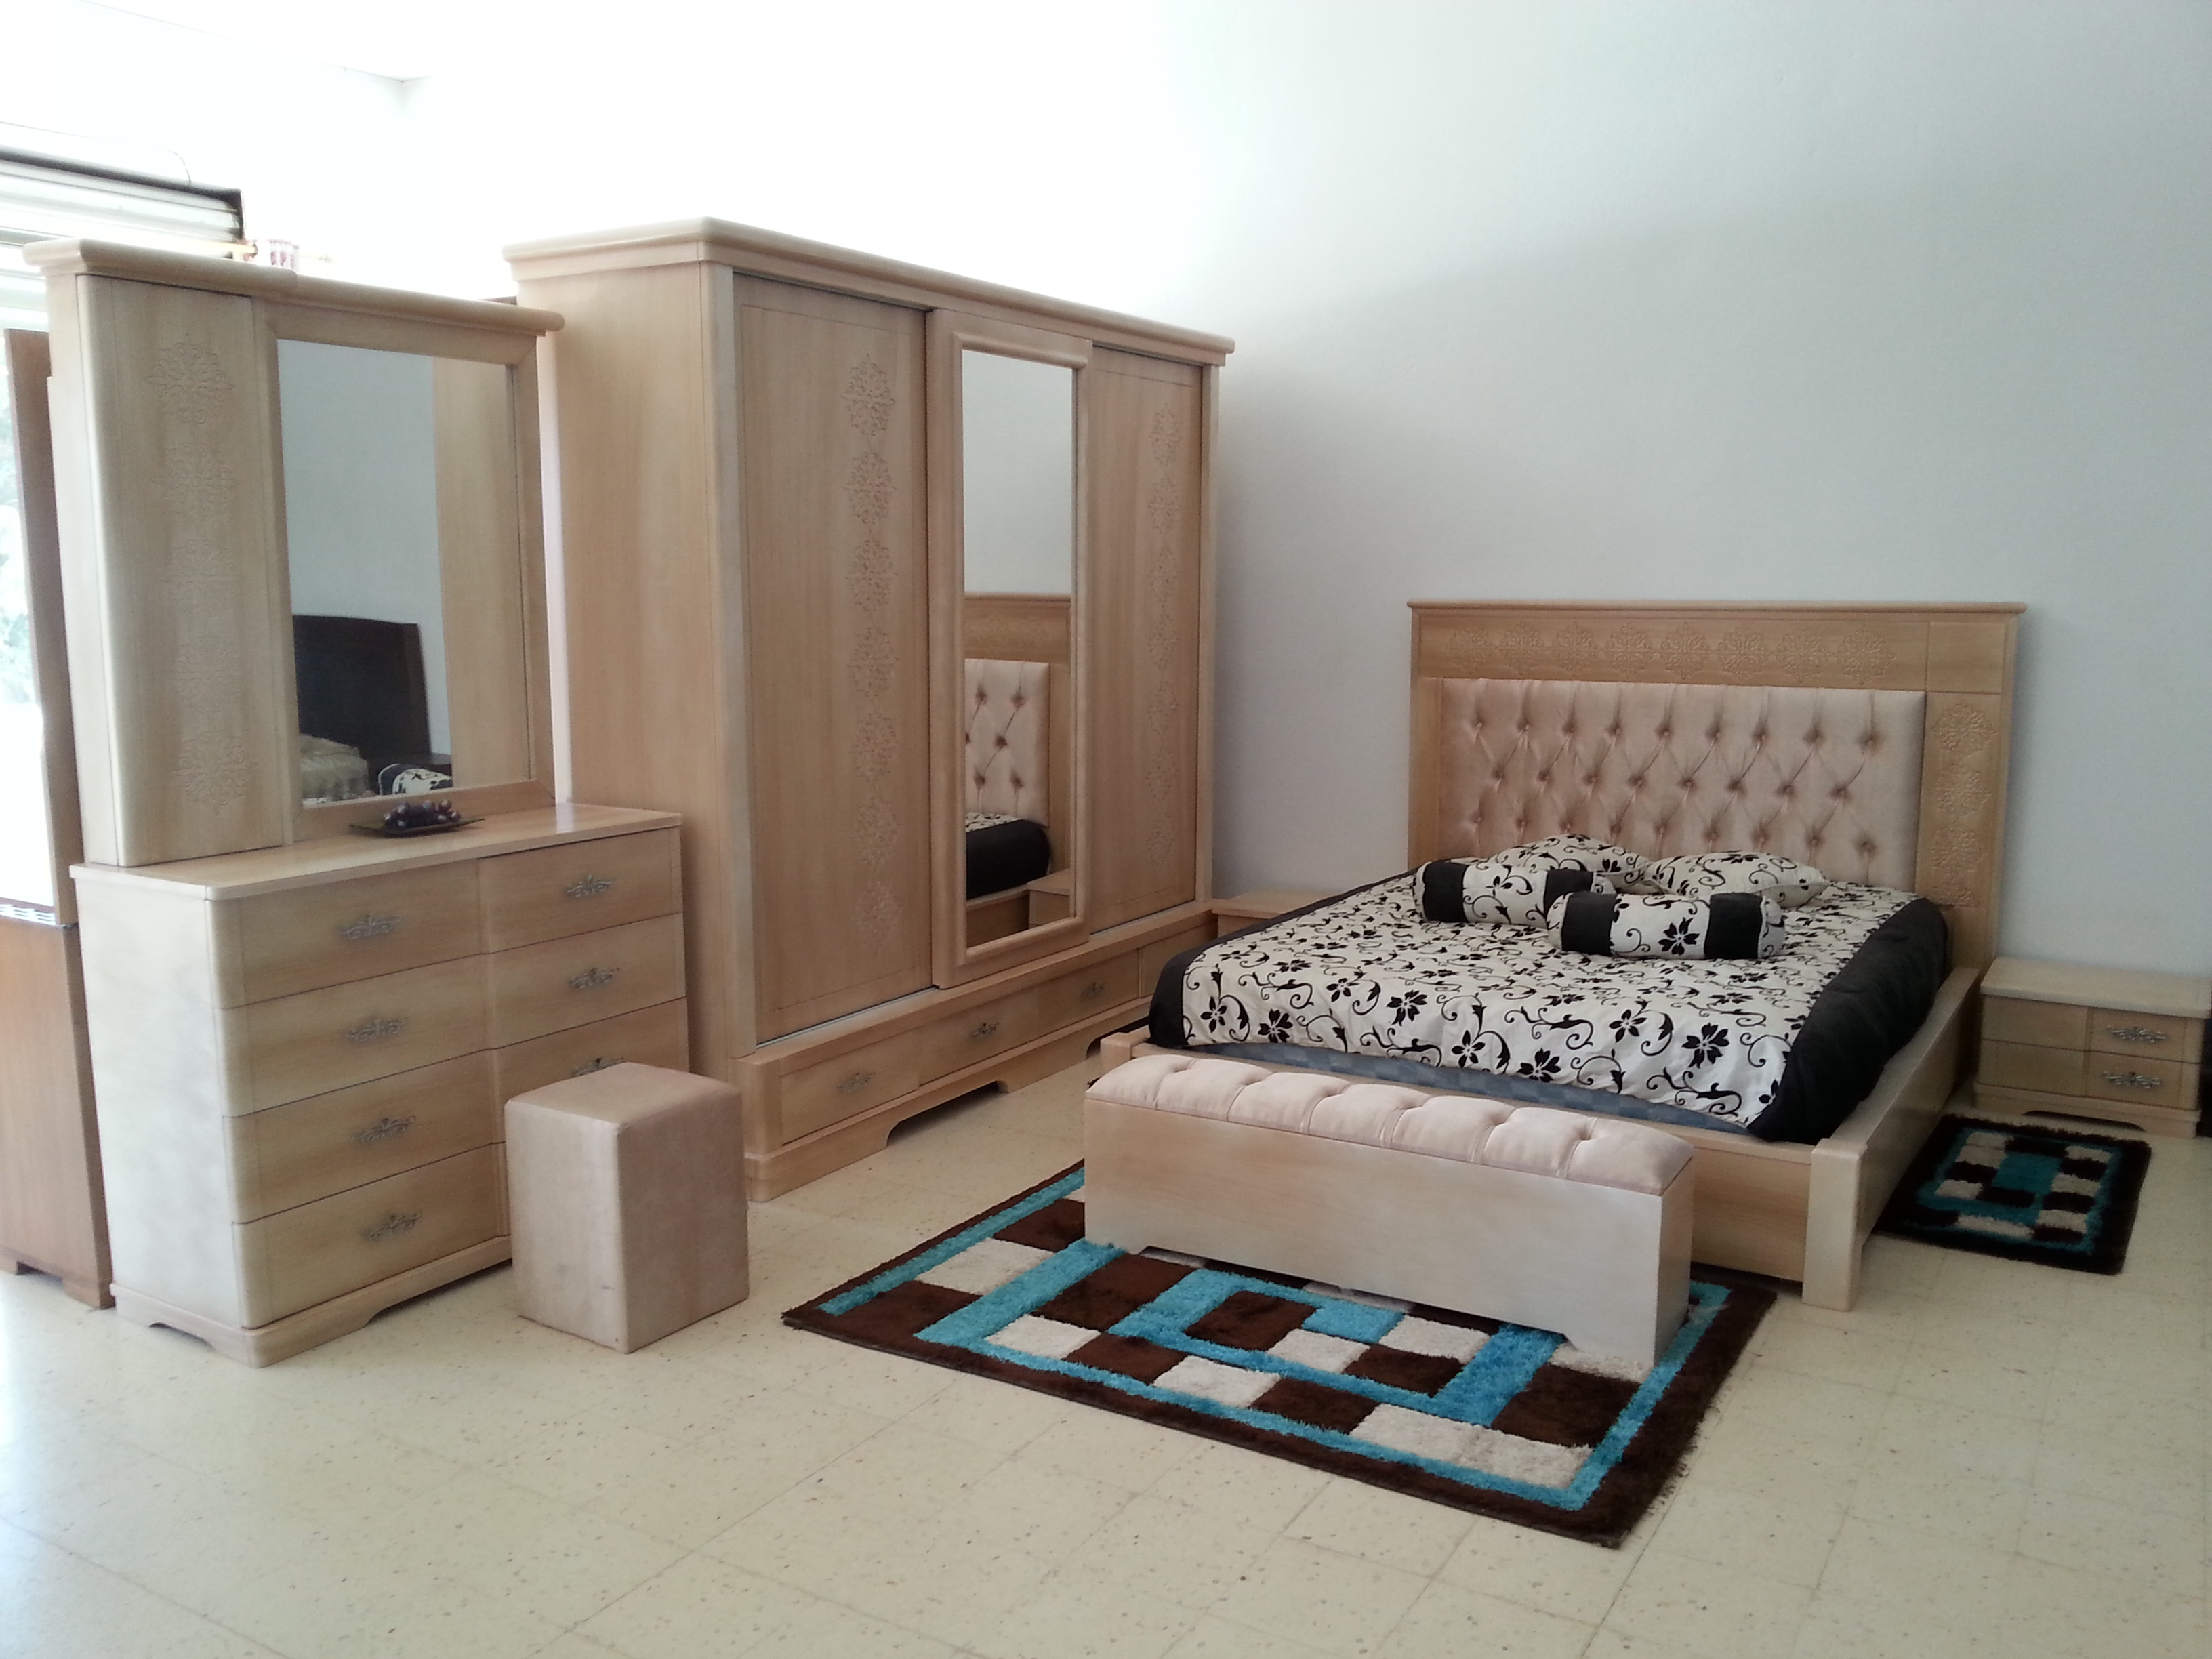 patinnage meubles et d coration tunisie. Black Bedroom Furniture Sets. Home Design Ideas